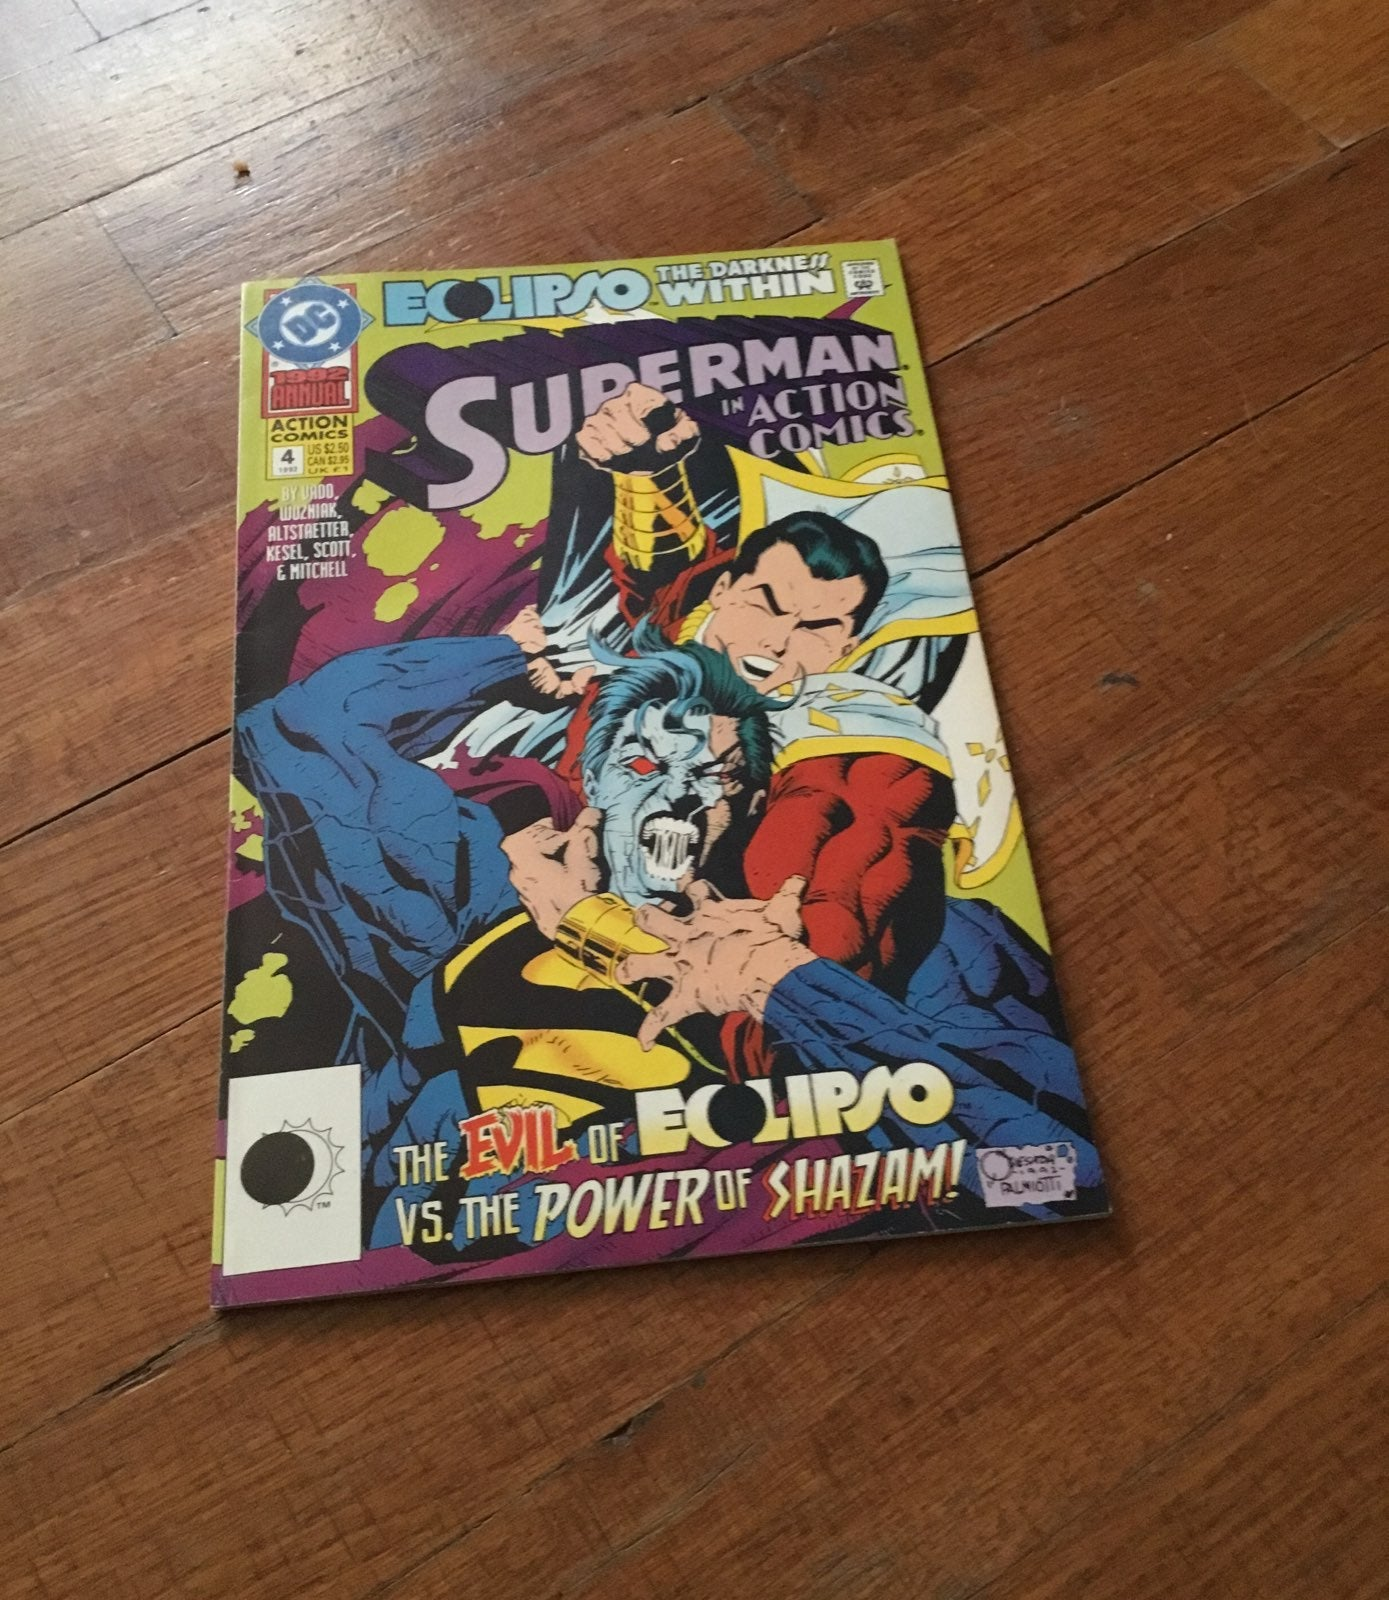 Superman in Action comics the evil of Eo